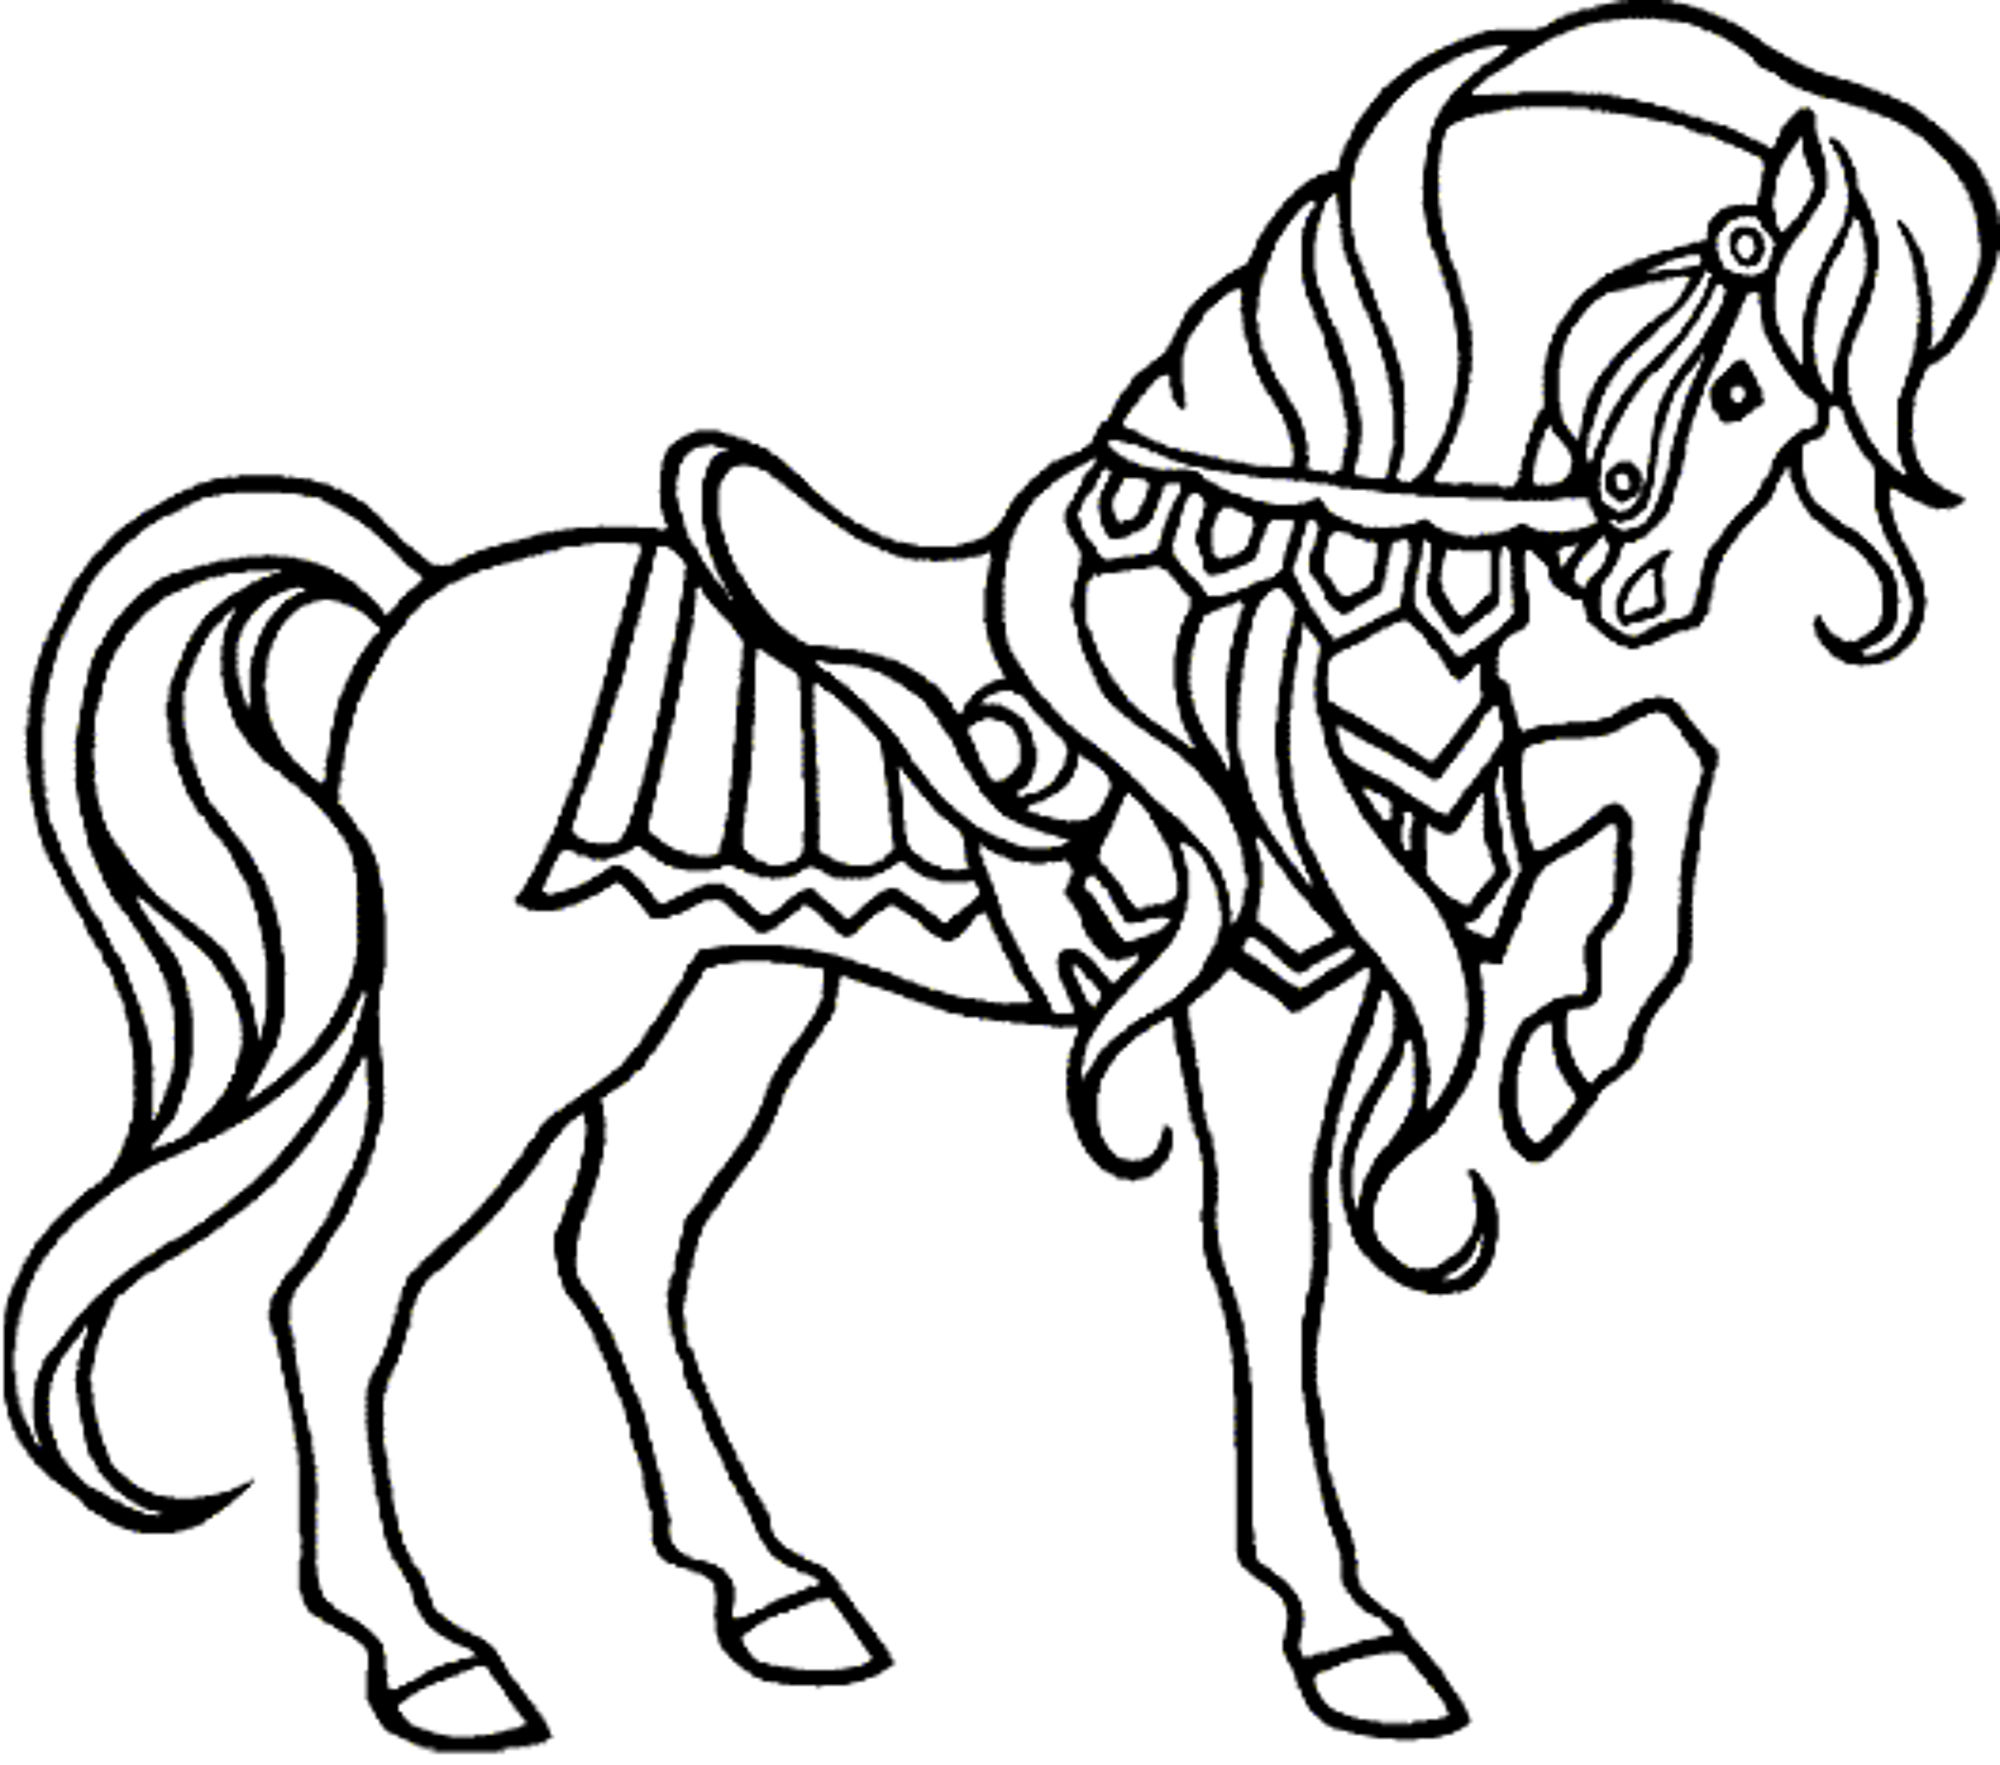 2000x1765 Fun Horse Coloring Pages For Your Kids Printable